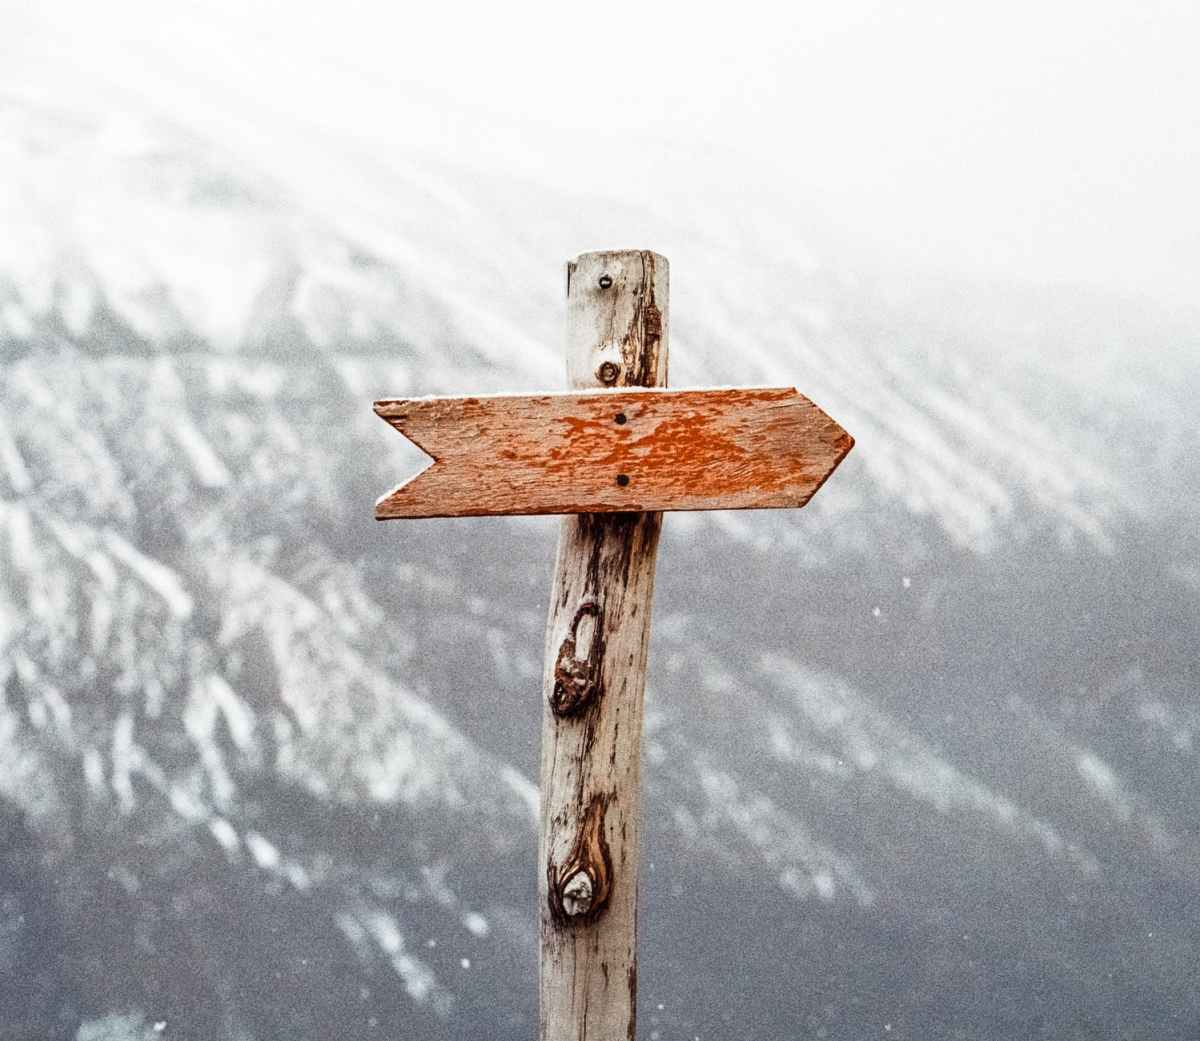 Wooden sign post pointing right, no text